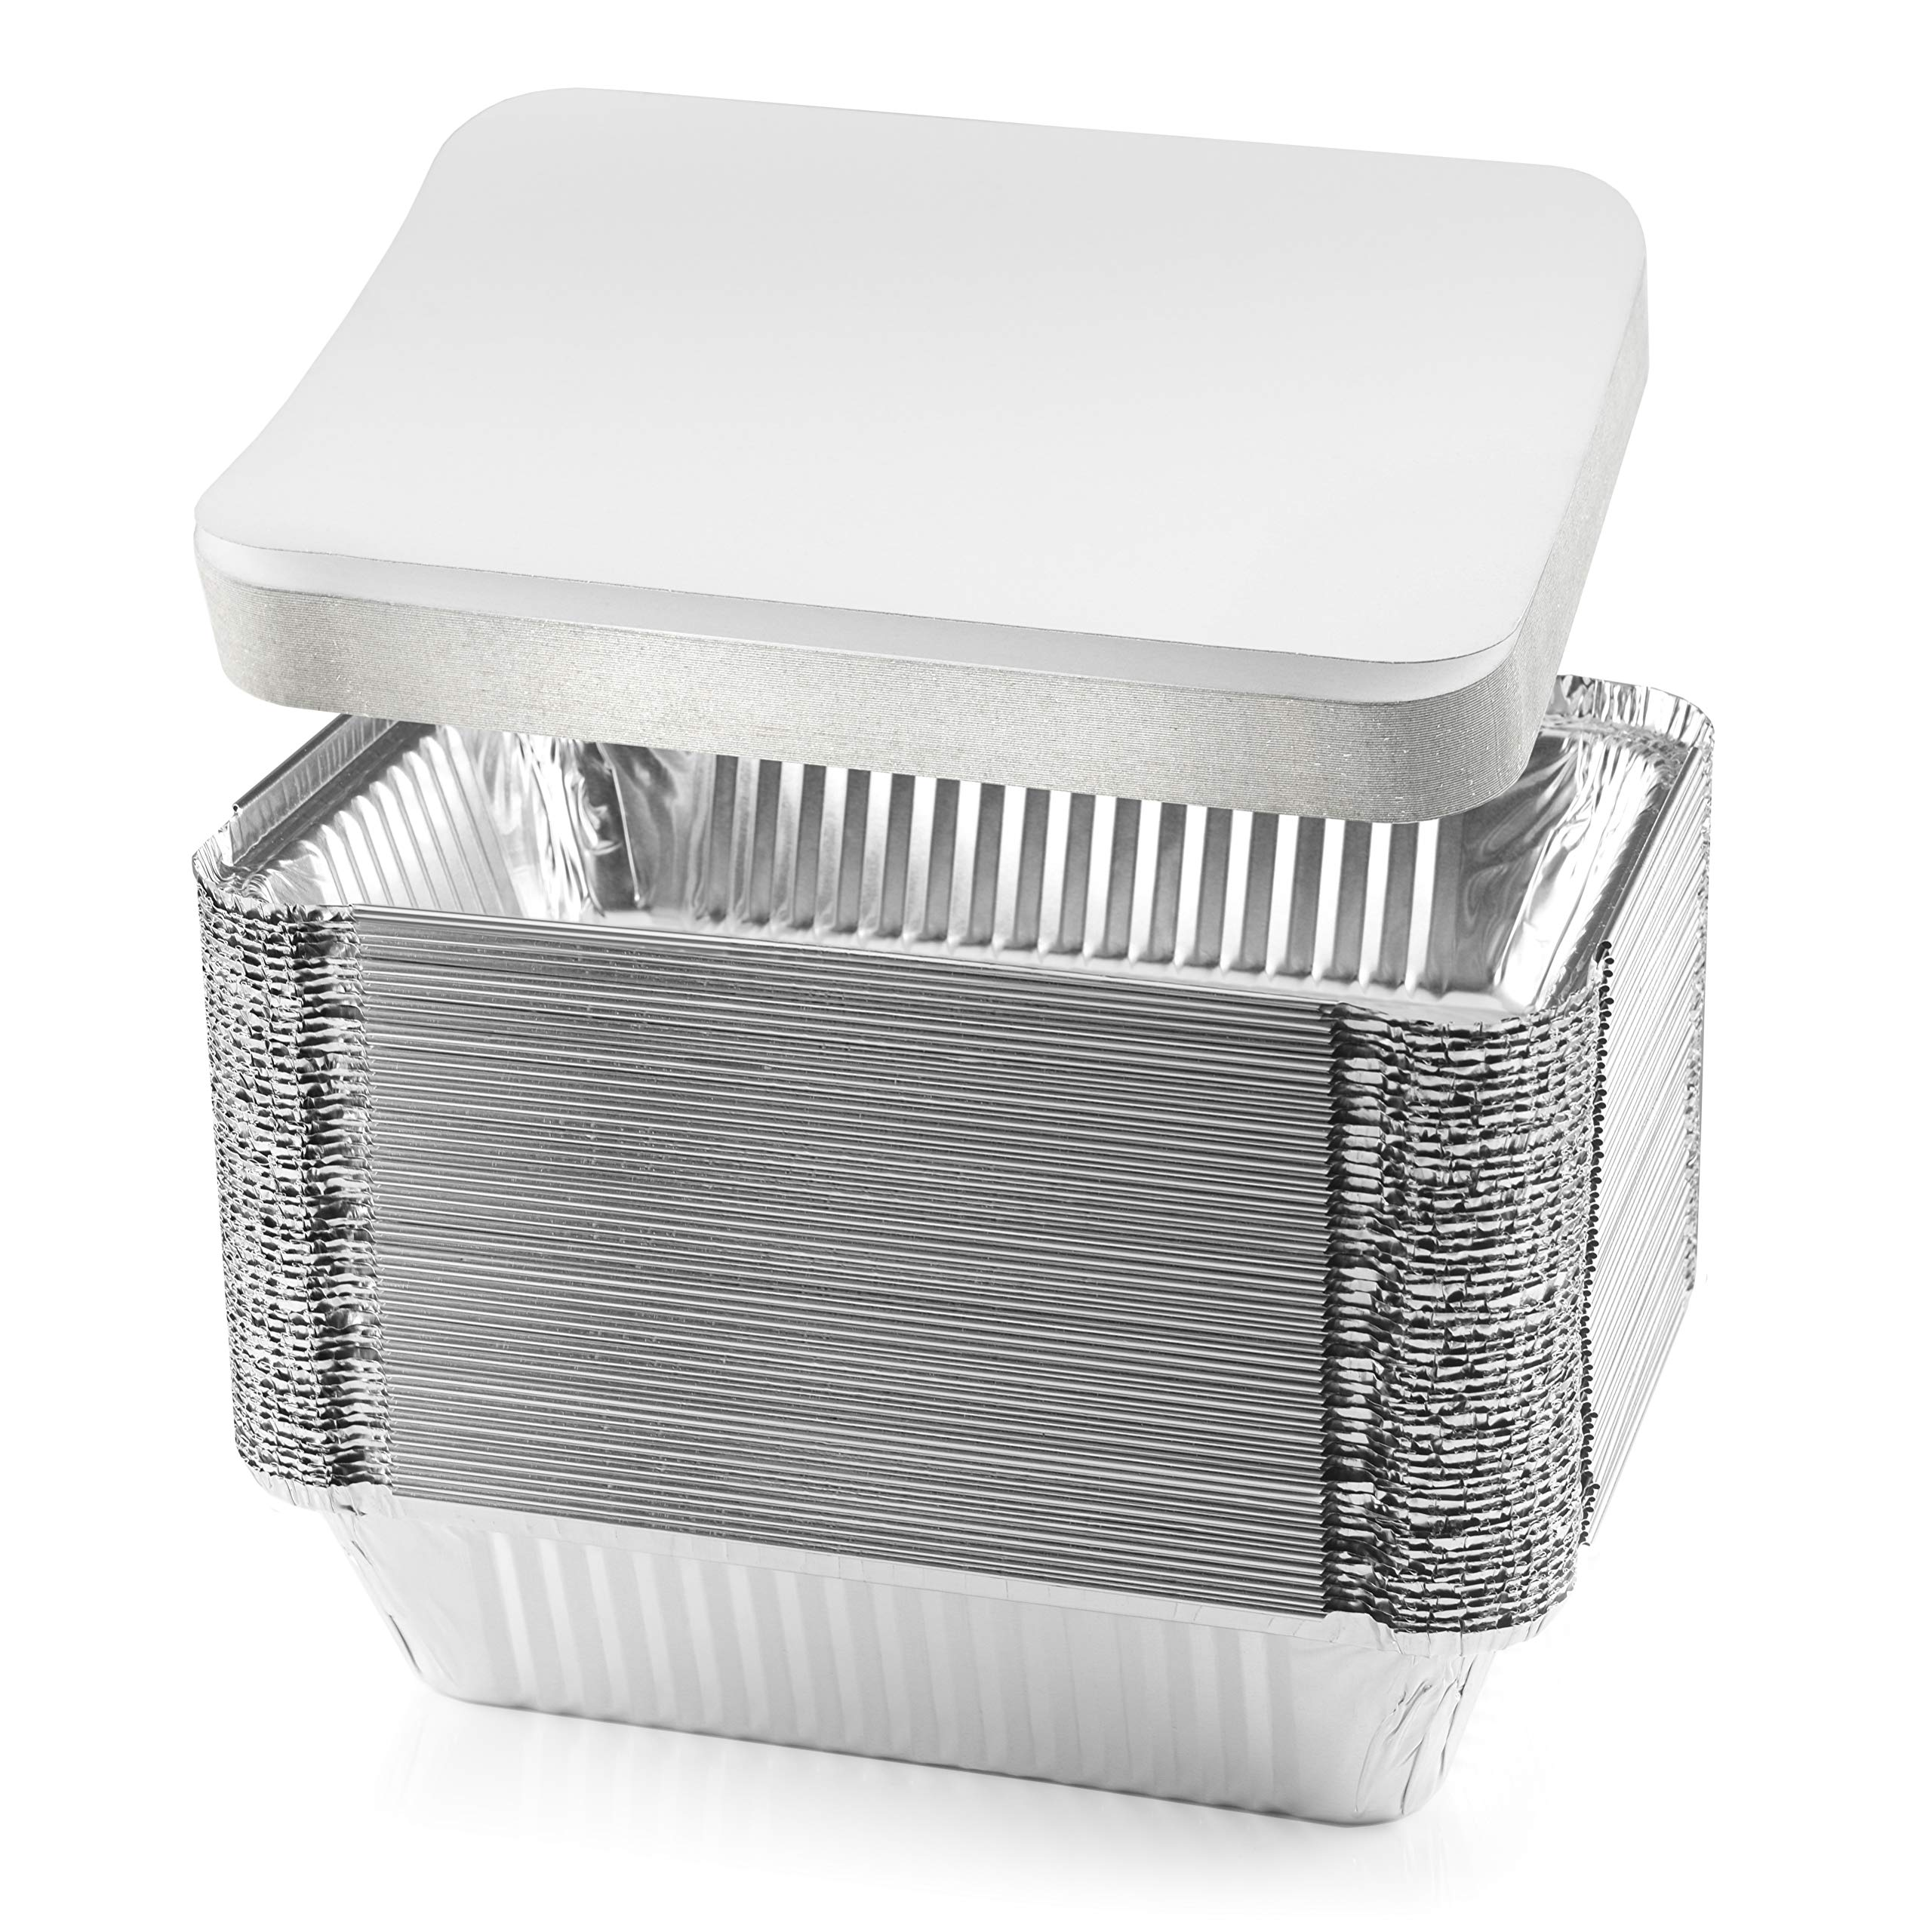 NYHI 50-Pack Heavy Duty Disposable Aluminum Oblong Foil Pans with Lid Covers Recyclable Tin Food Storage Tray Extra-Sturdy Containers for Cooking, Baking, Meal Prep, Takeout - 8.4'' x 5.9'' - 2.25lb